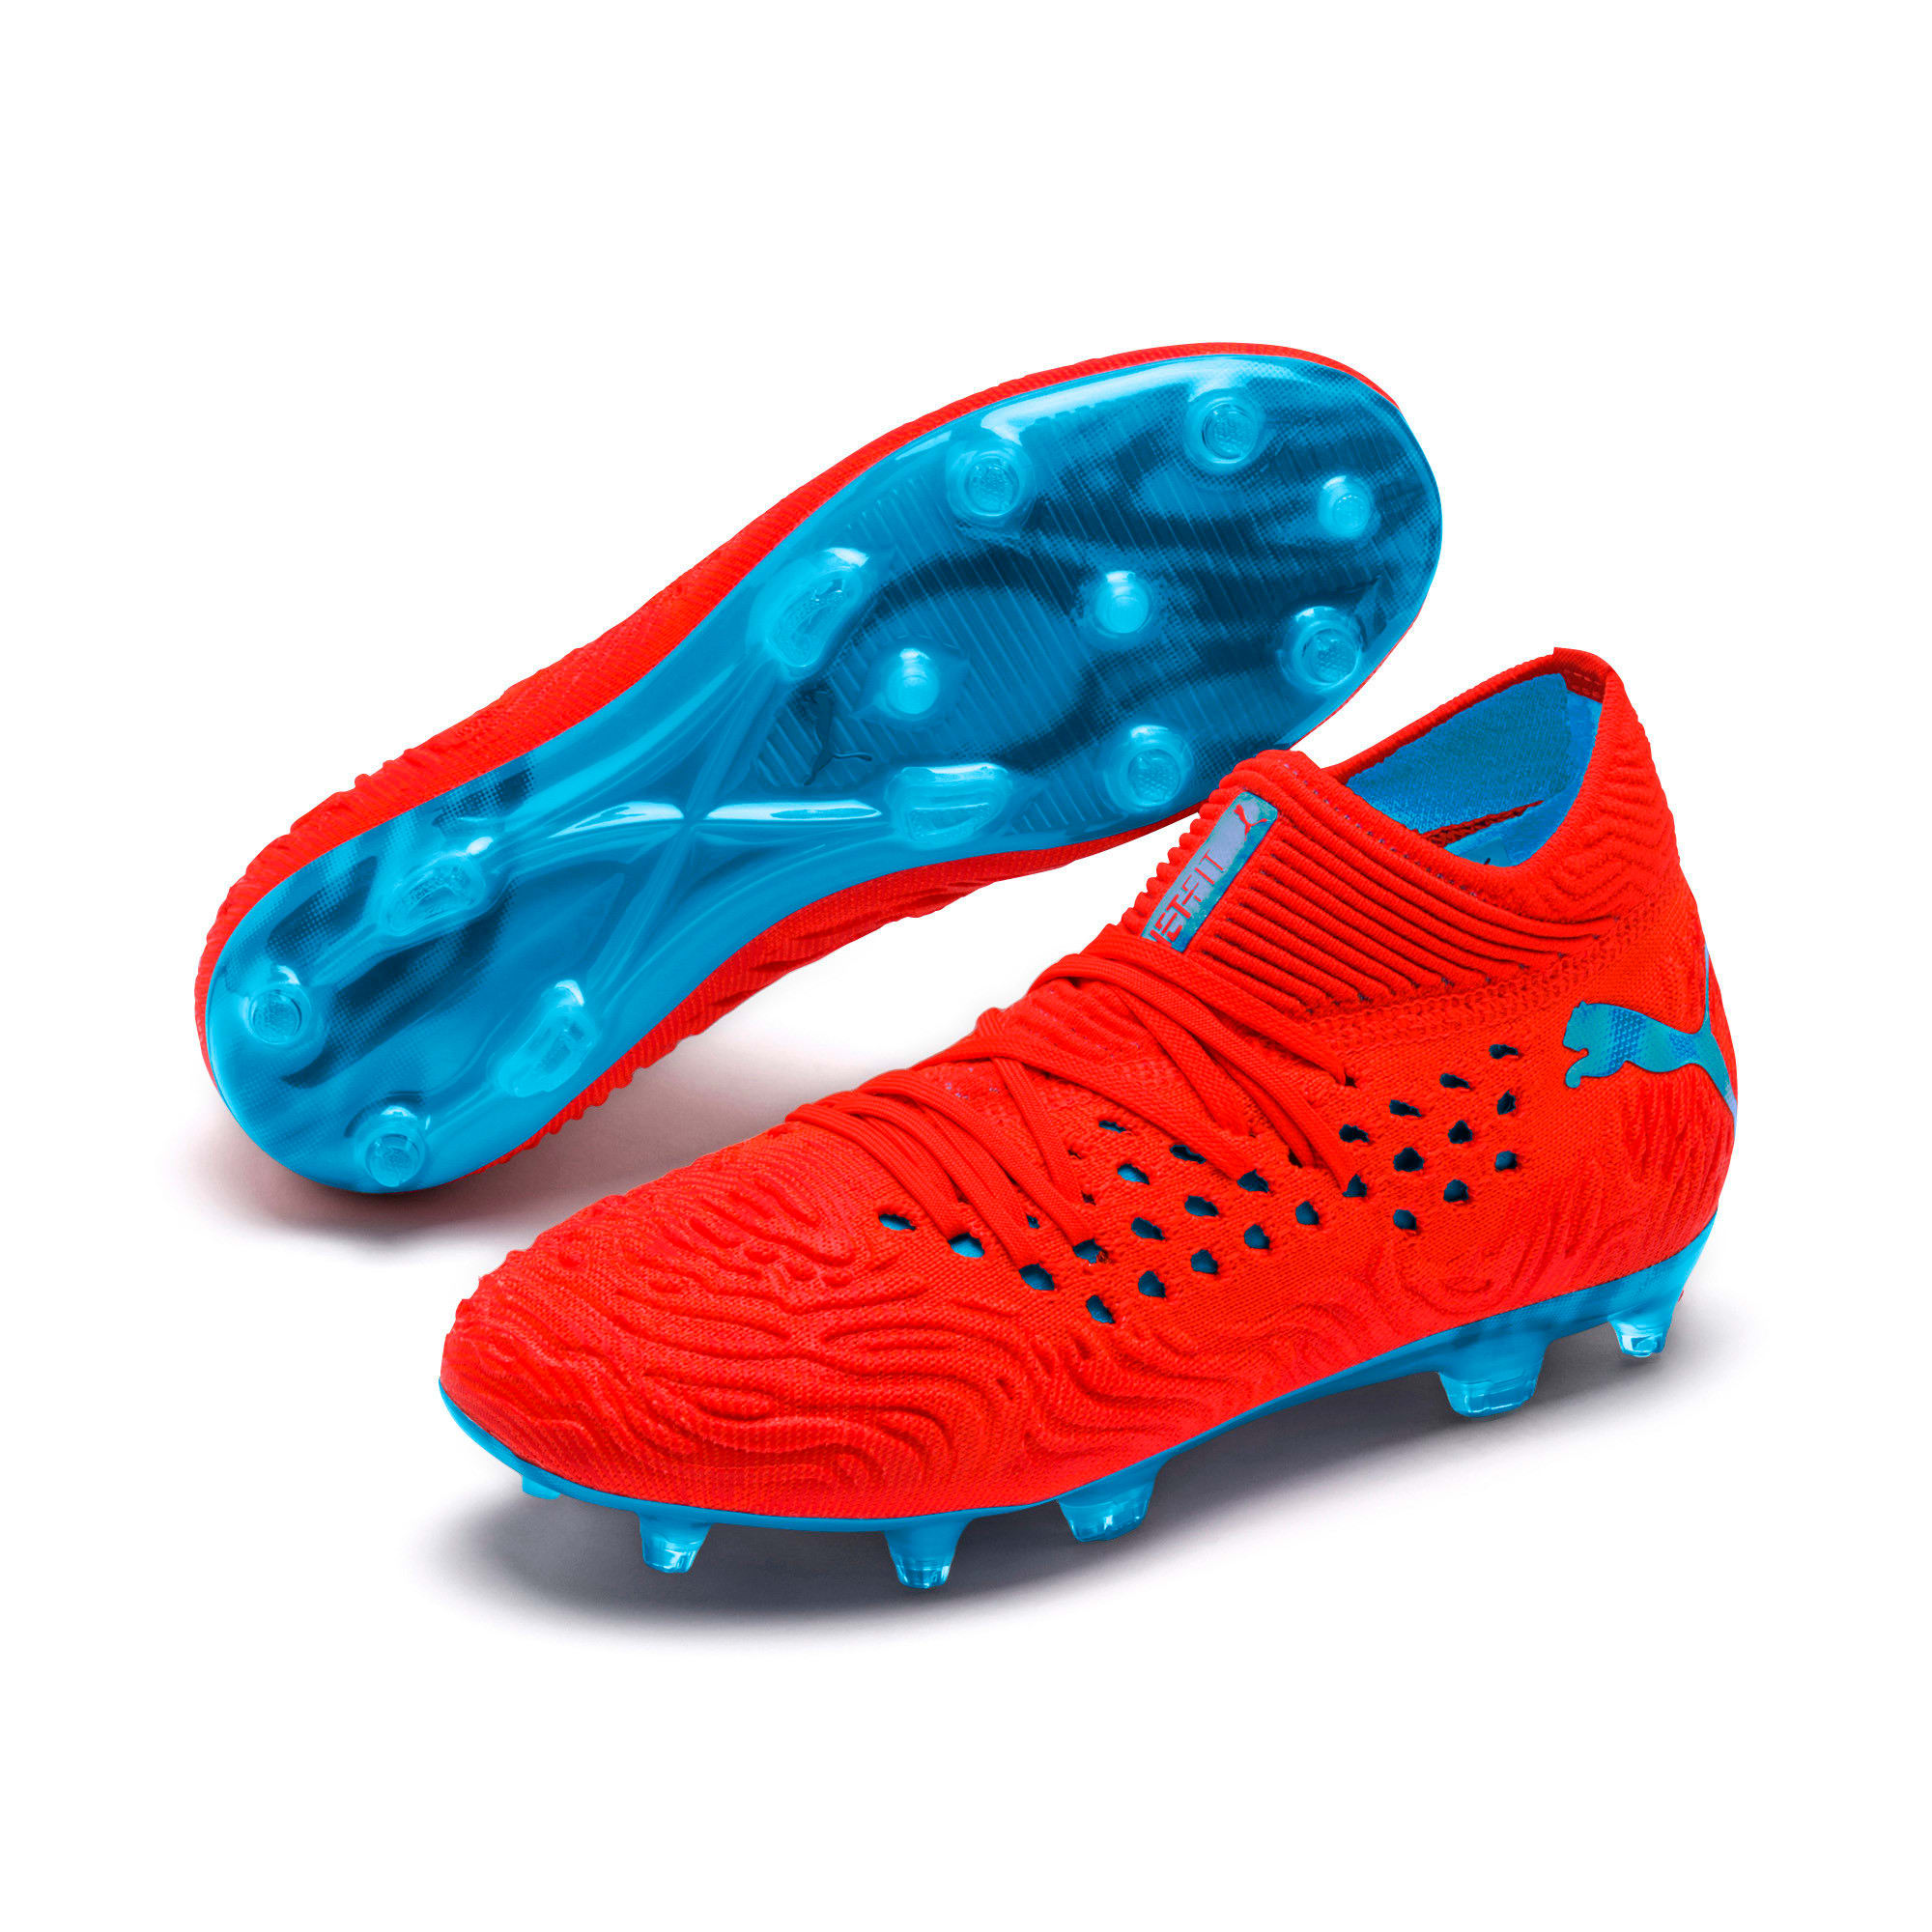 Thumbnail 2 of FUTURE 19.1 NETFIT FG/AG Soccer Cleats JR, Red Blast-Bleu Azur, medium